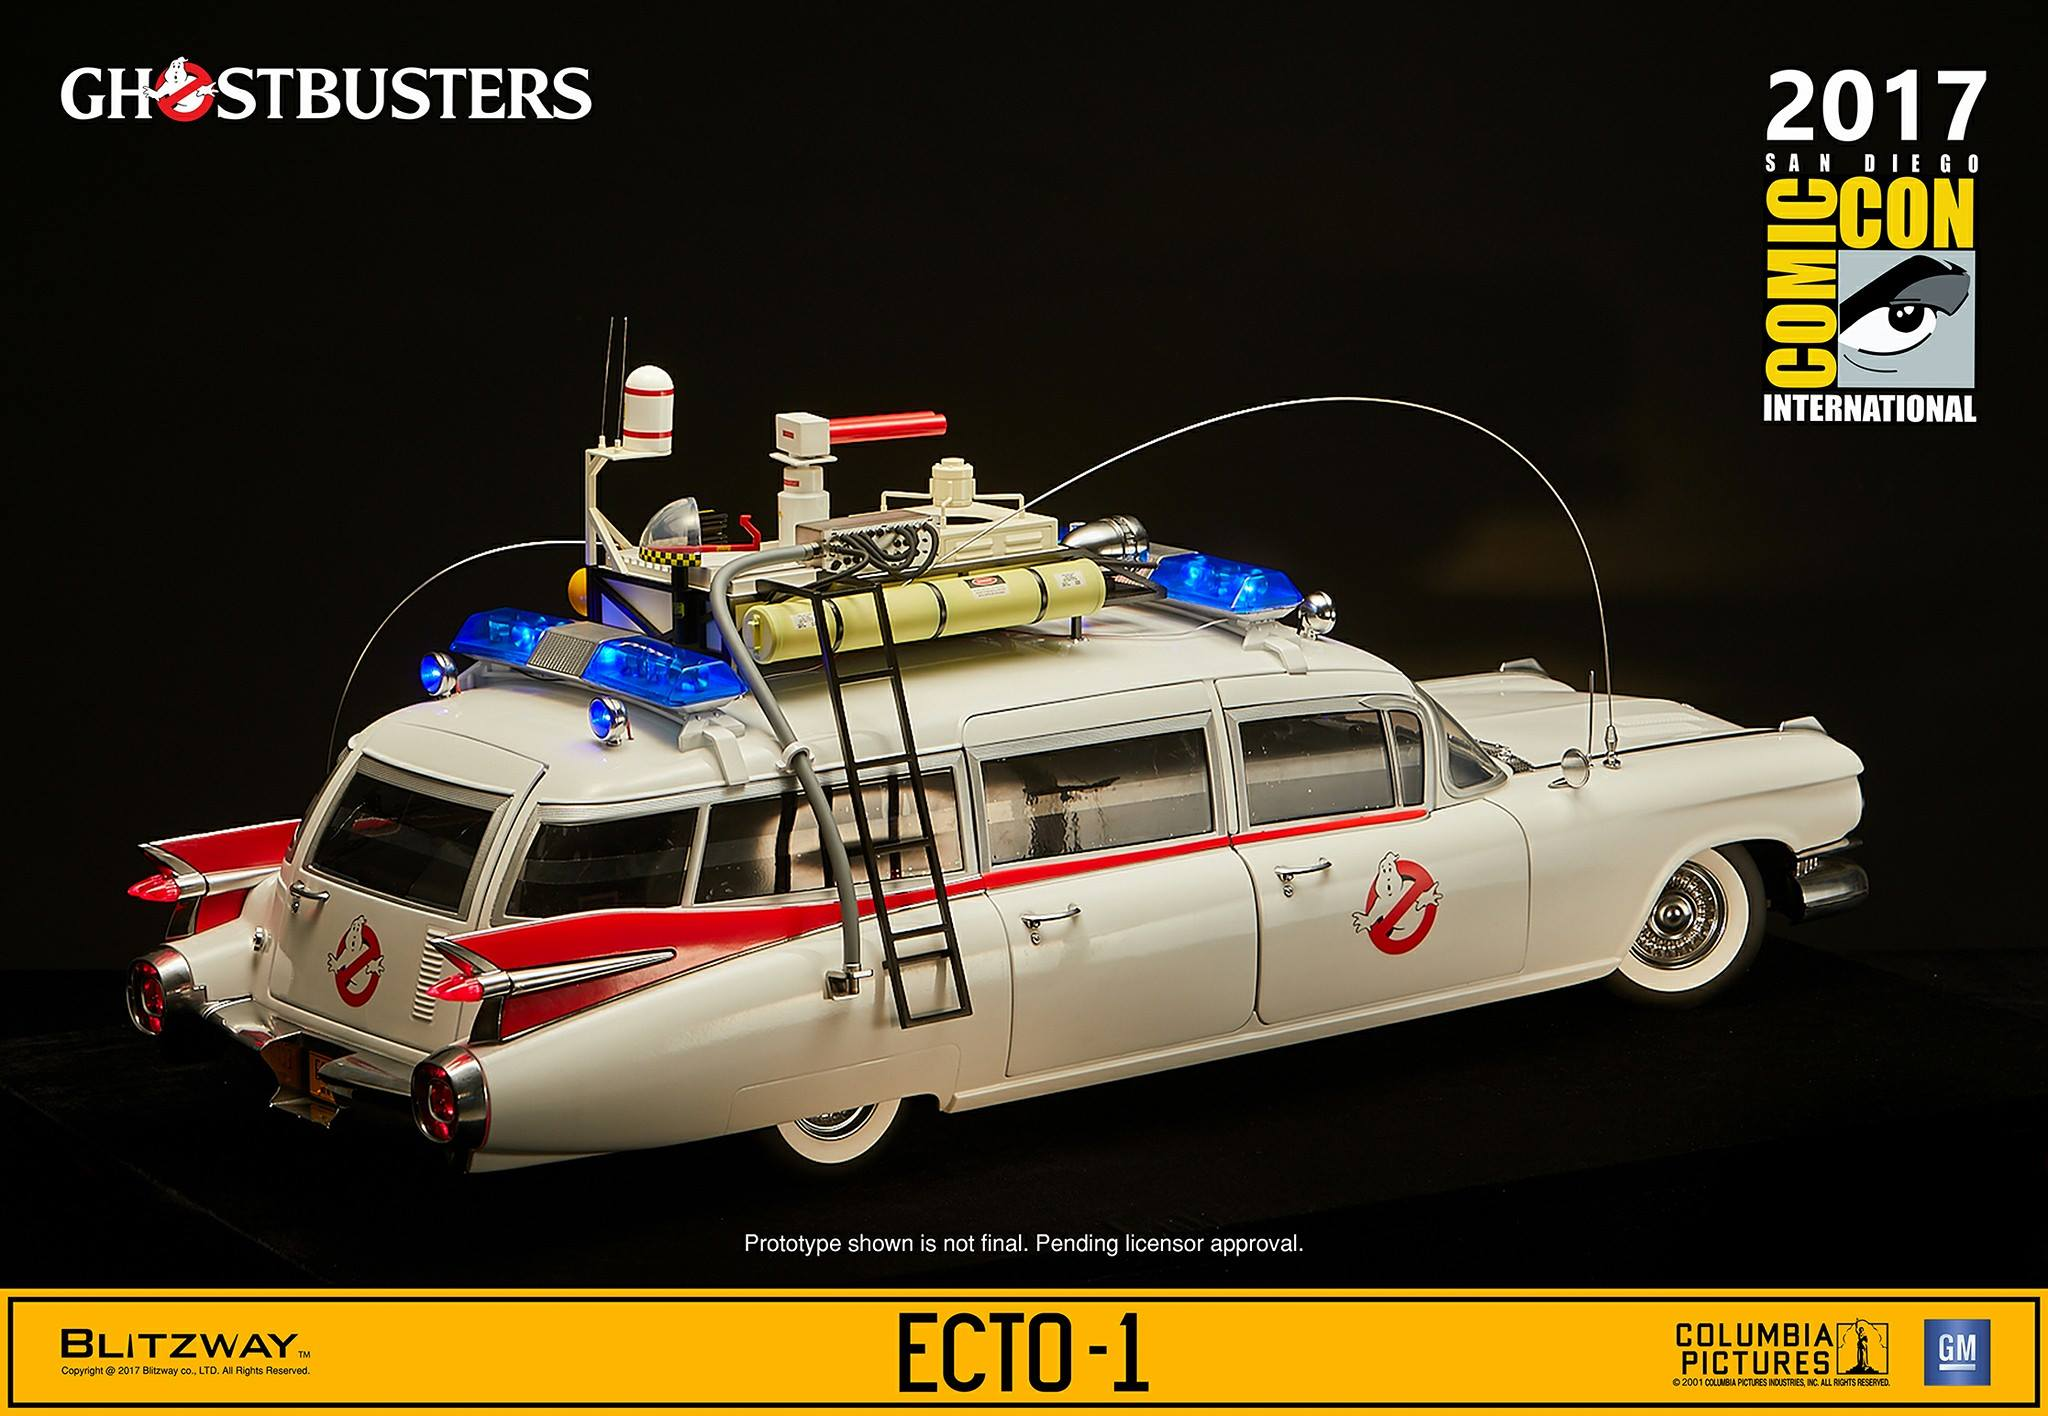 Blitzway-Ecto-1-Ghostbusters-007.jpg